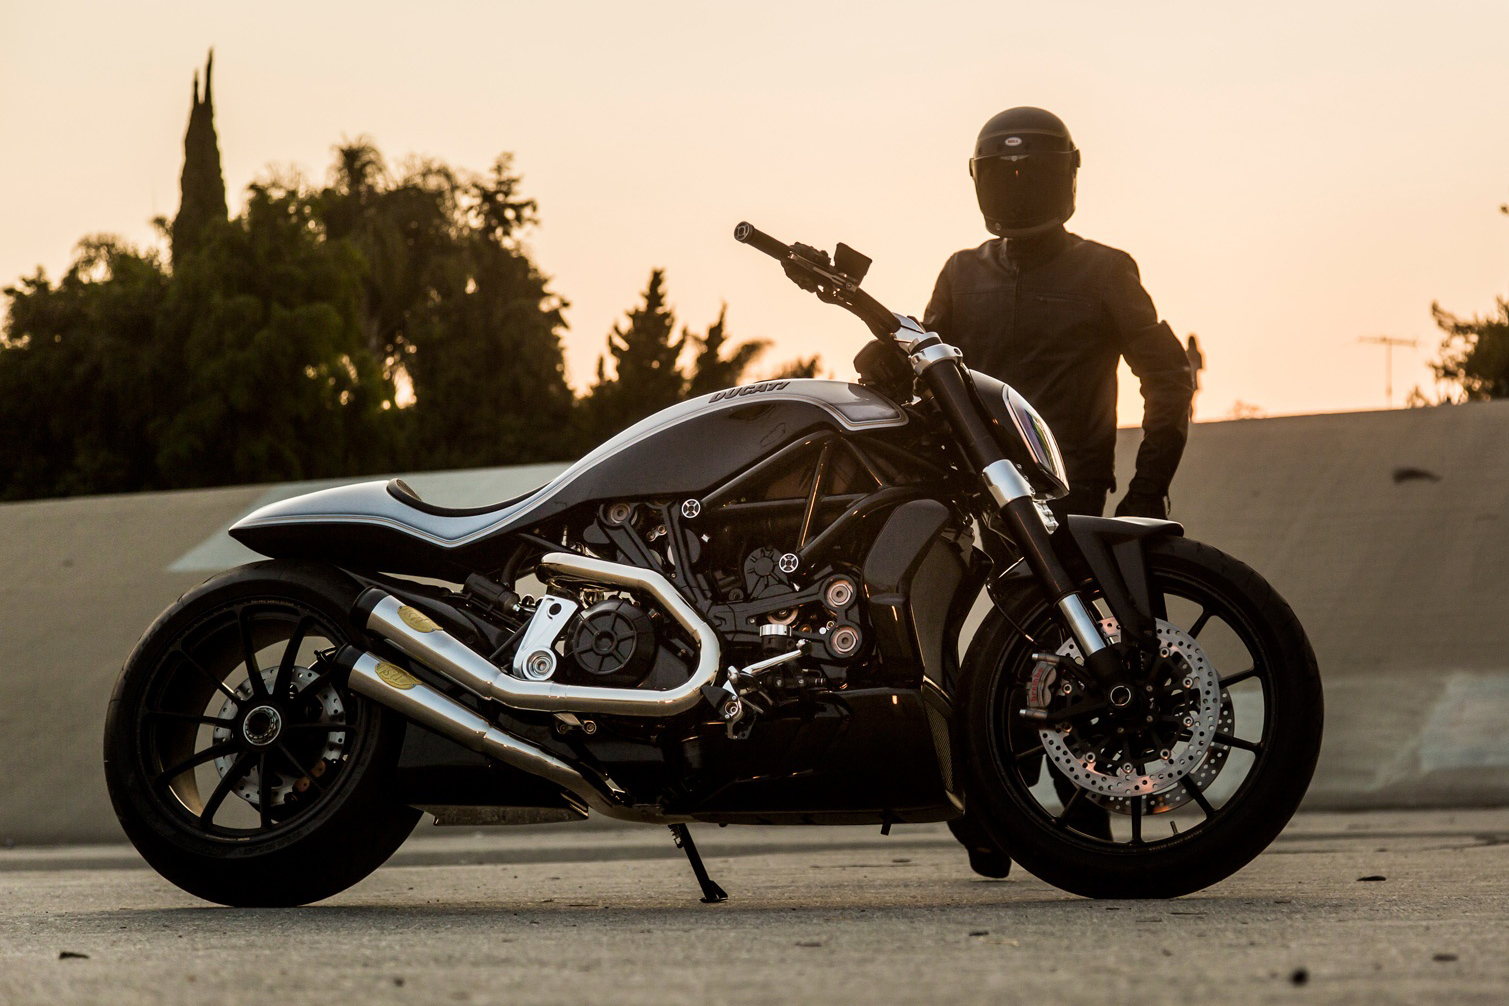 Roland Sands Puts His Spin on the Ducati XDiavel